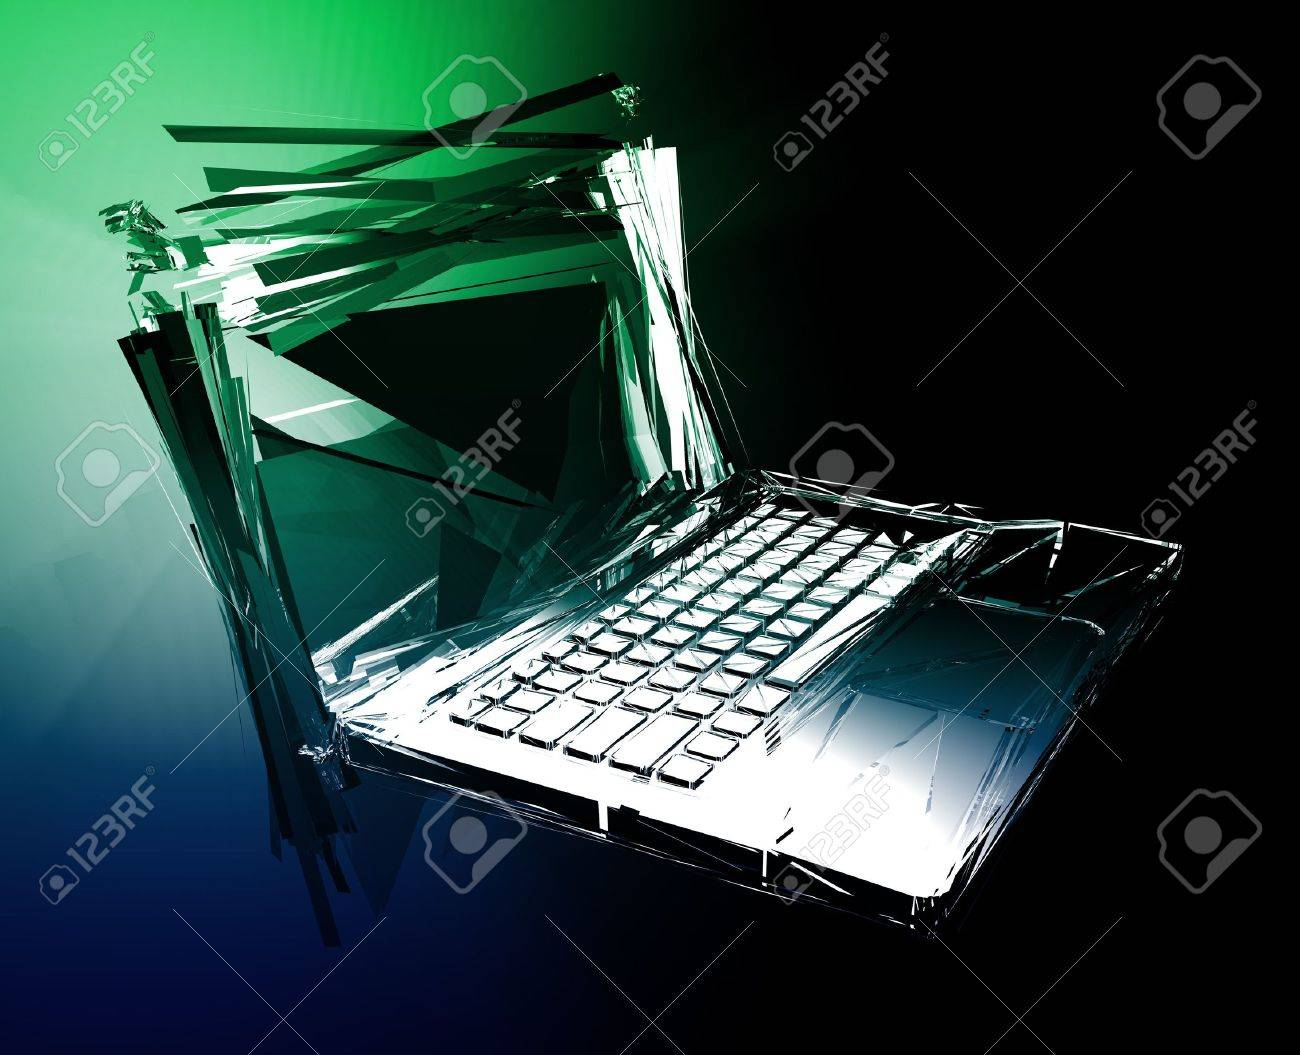 Computer technology failure with broken notebook concept illustration Stock Photo - 6301933